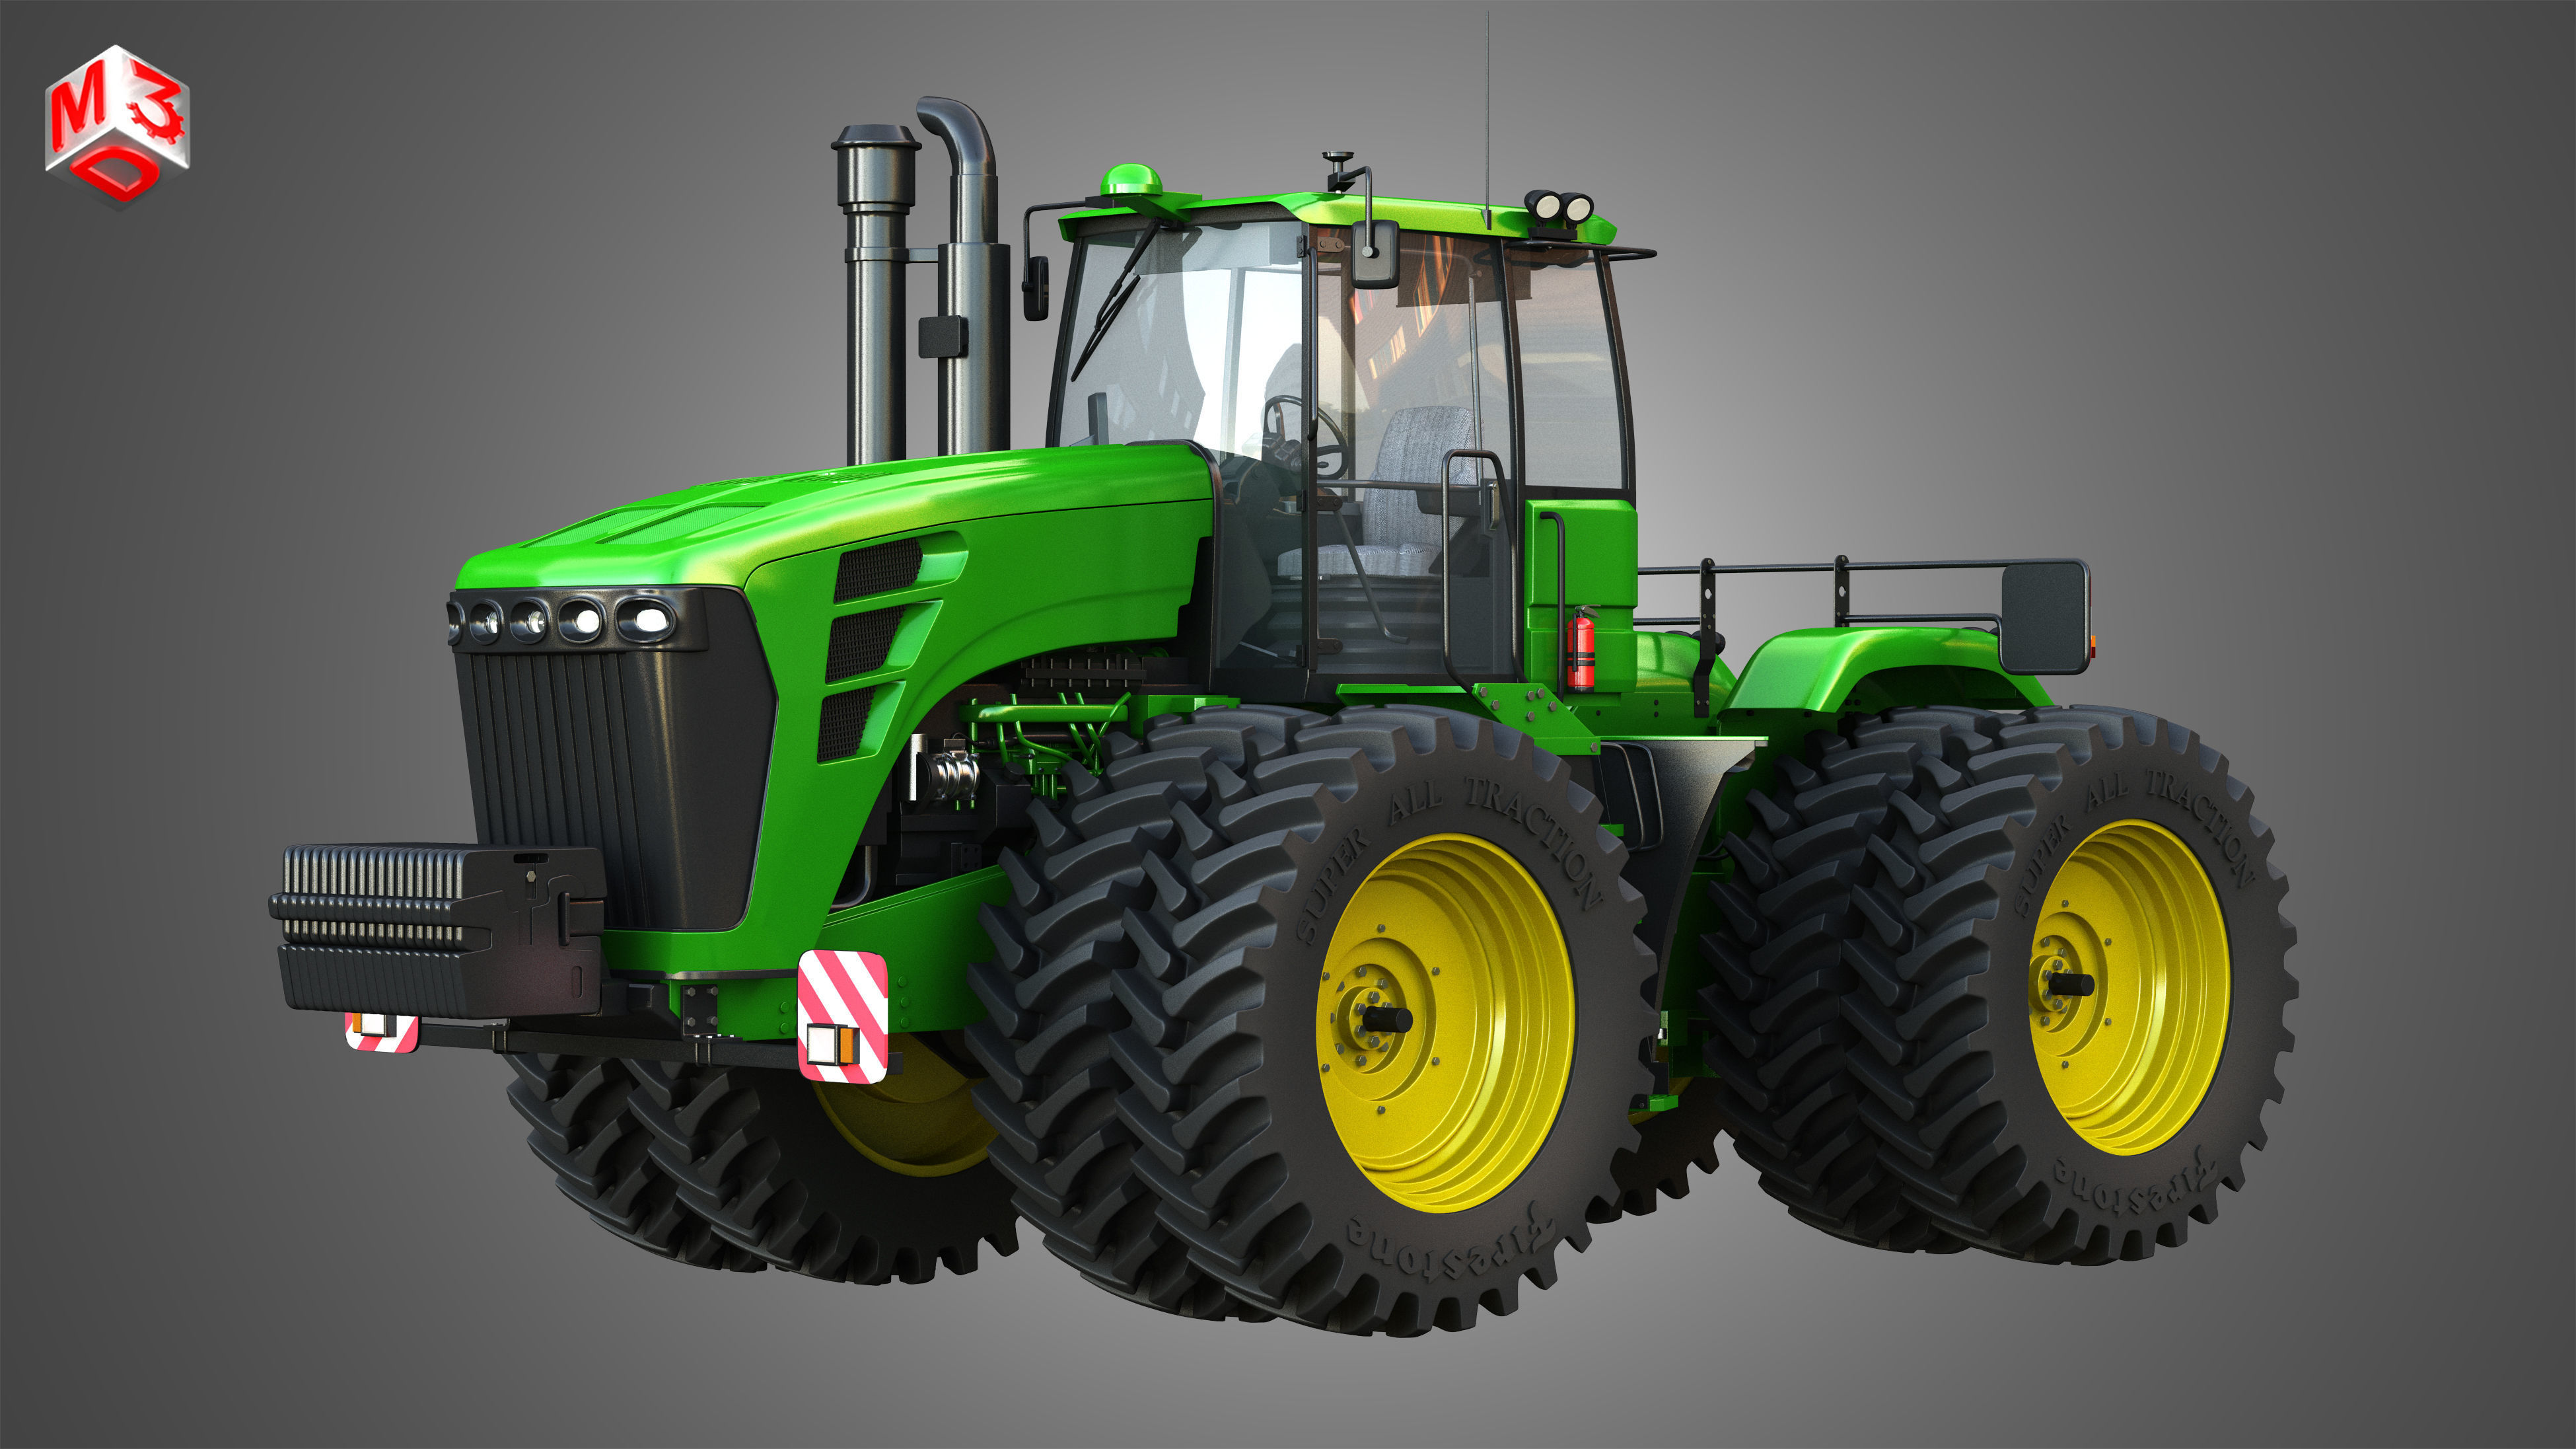 JD - 9230 Articulated Tractor